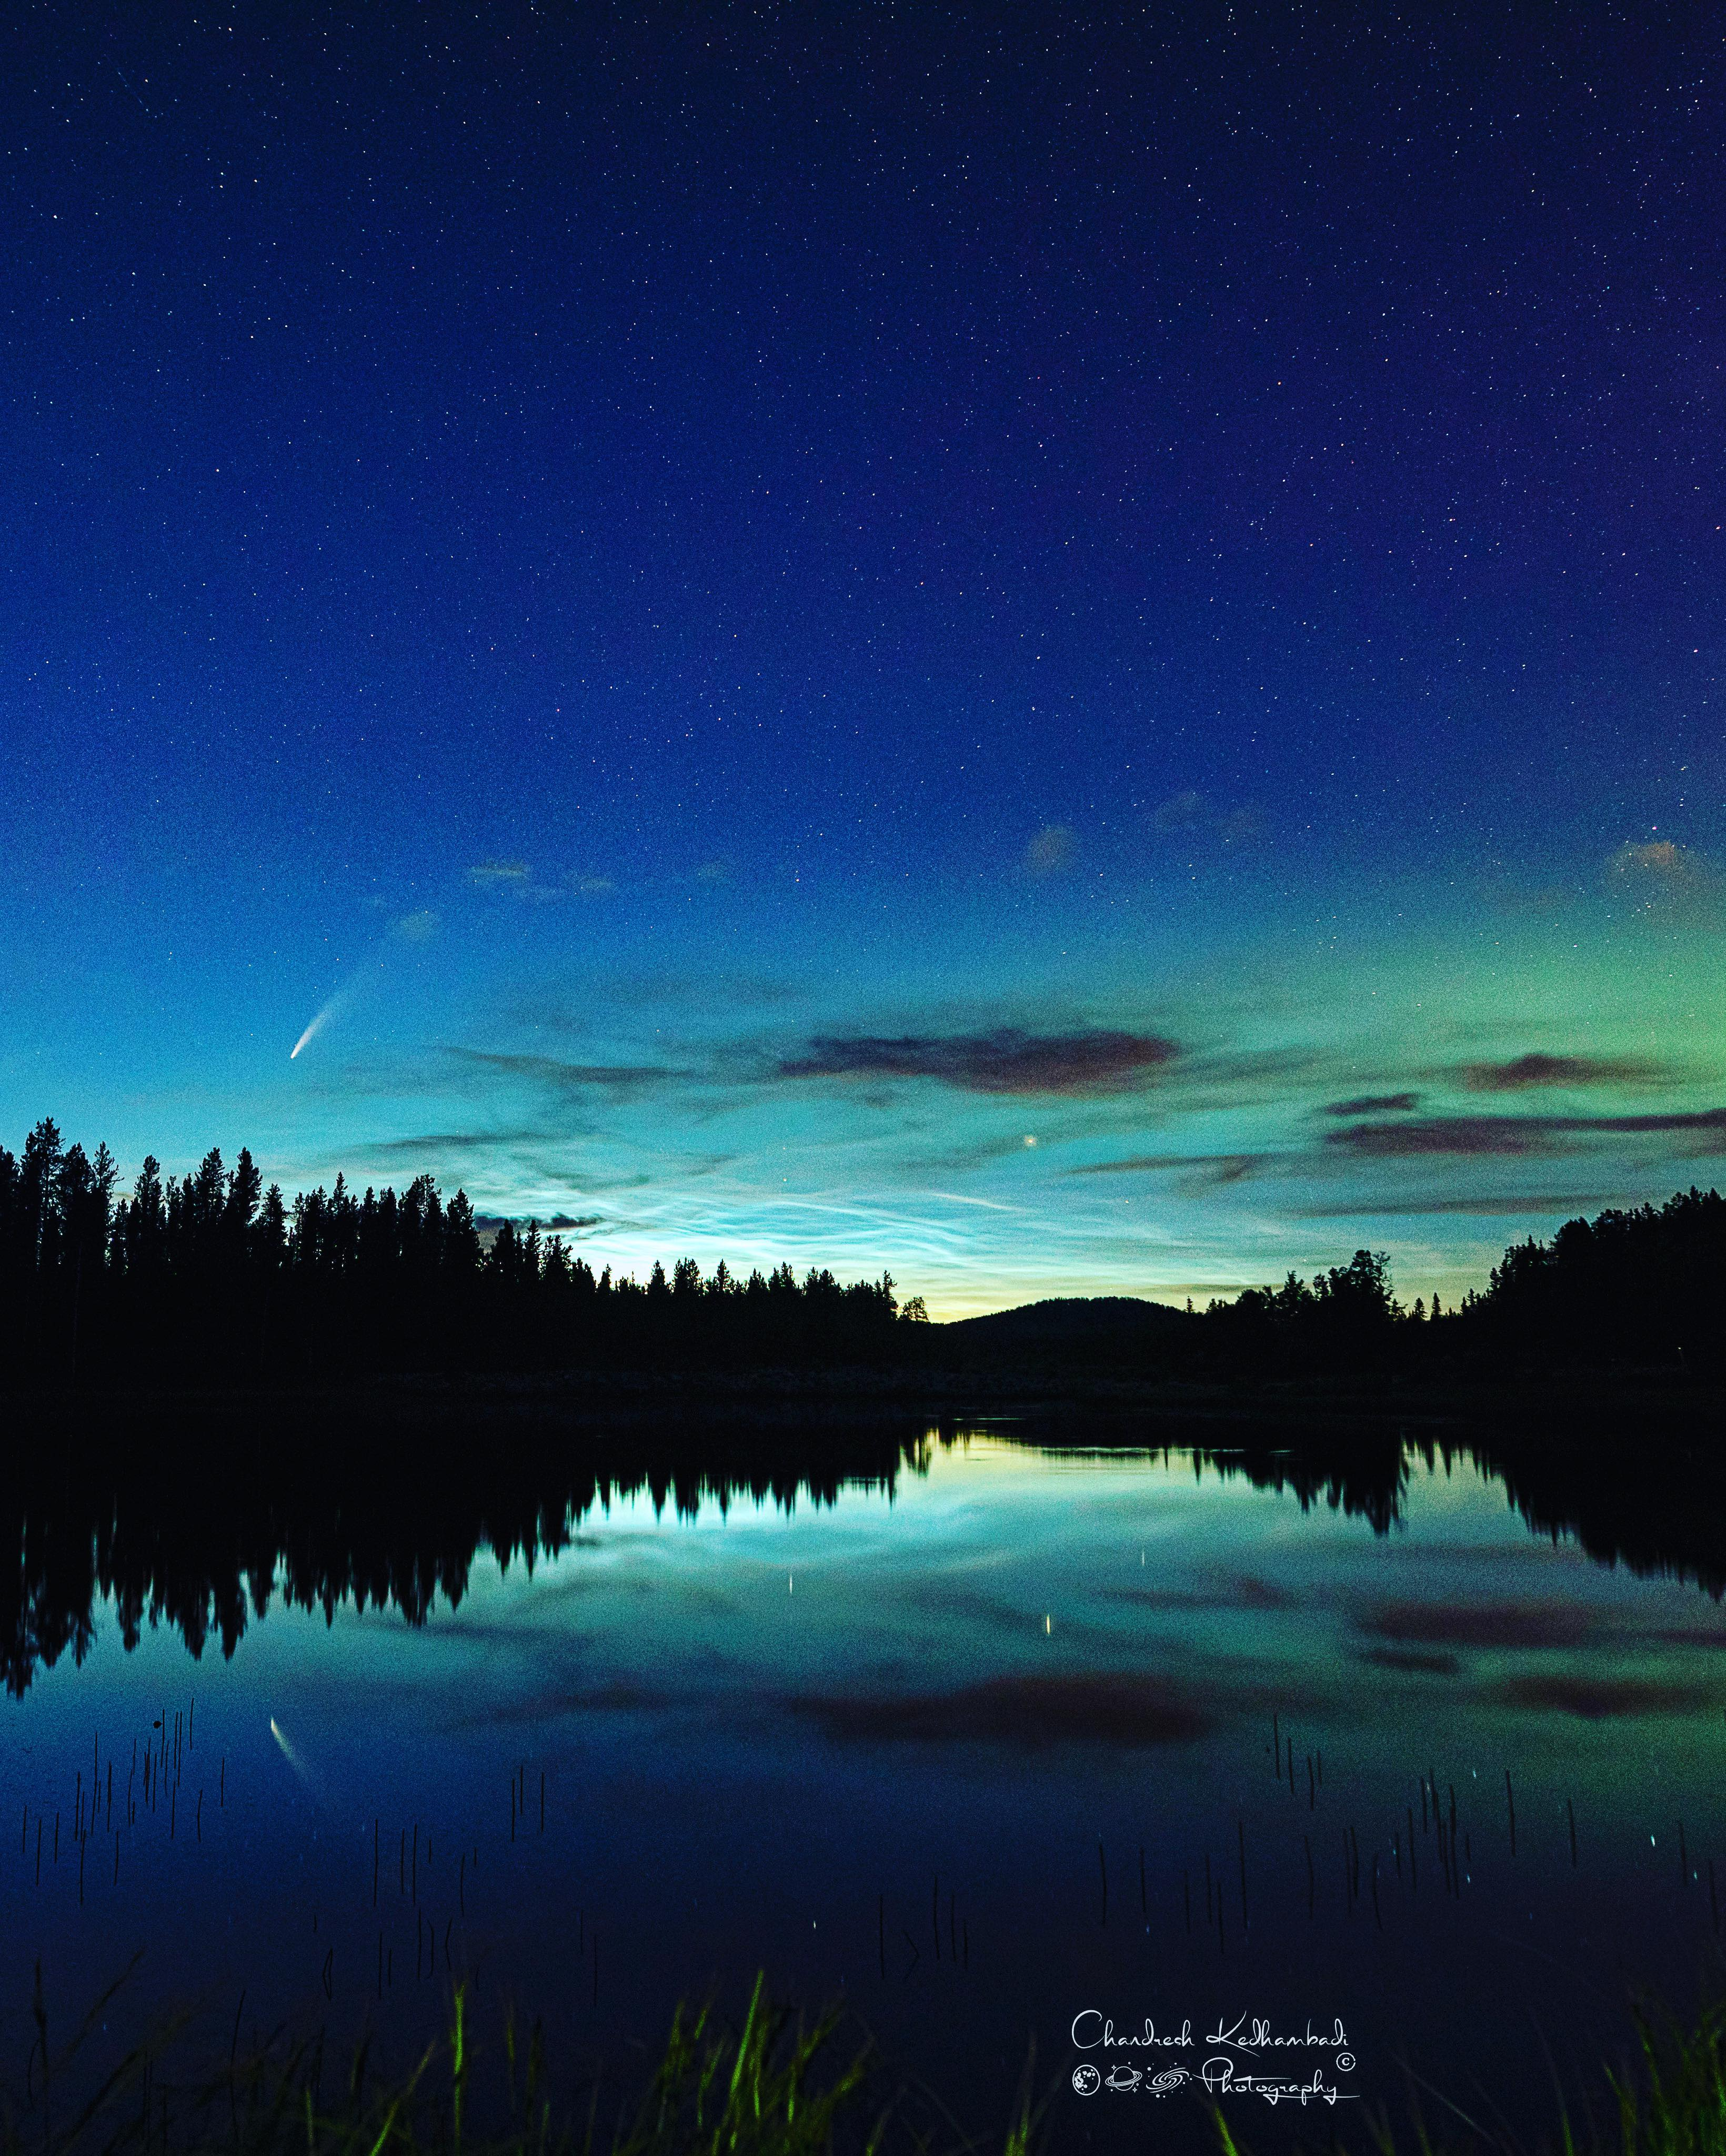 A landscape in front of water, with noctilucent clouds near the horizon